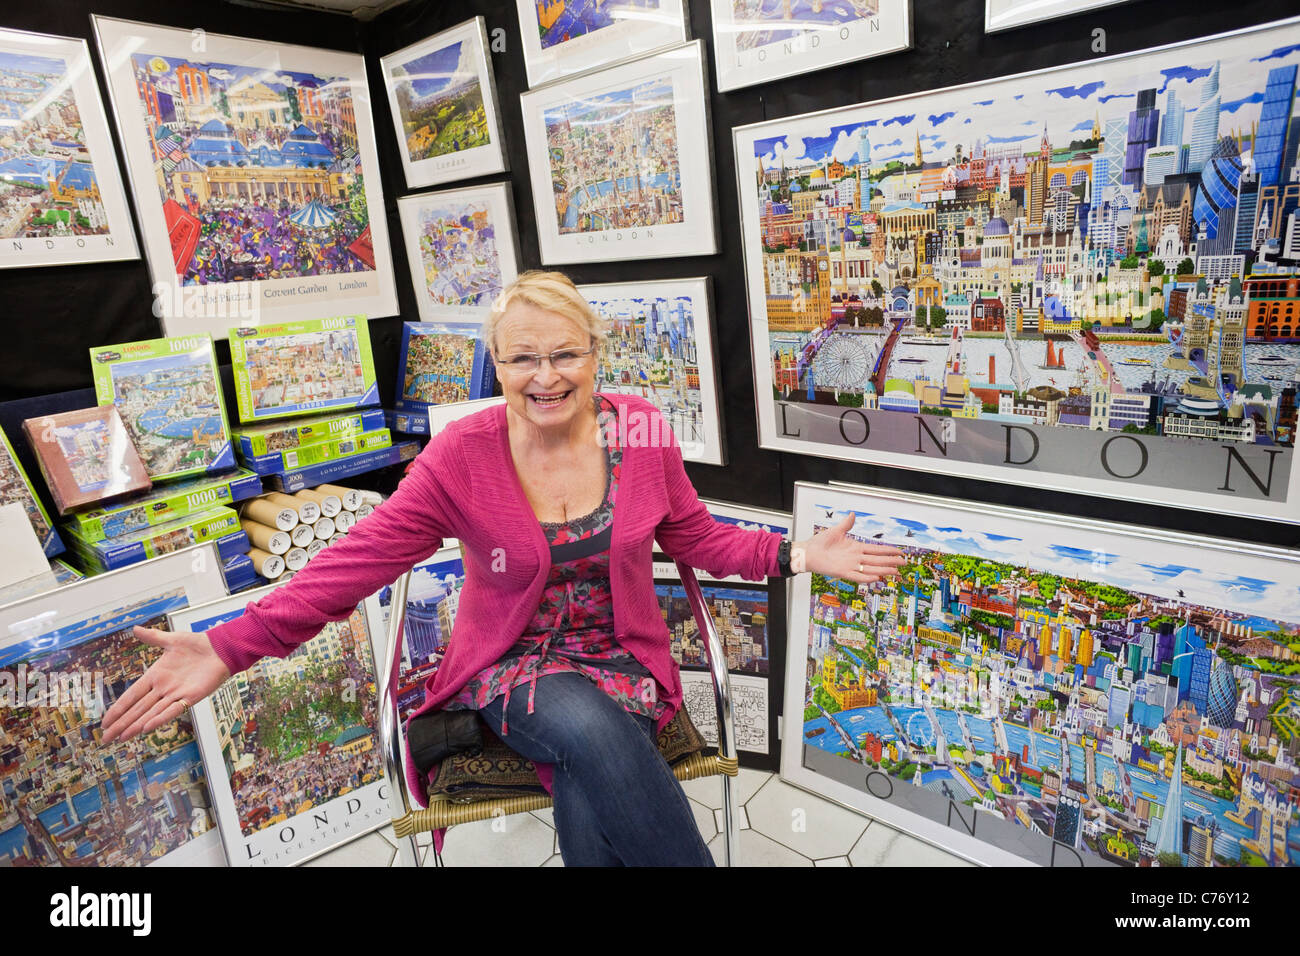 England, London, Covent Garden, Jubilee Market, Poster Shop Stock ...